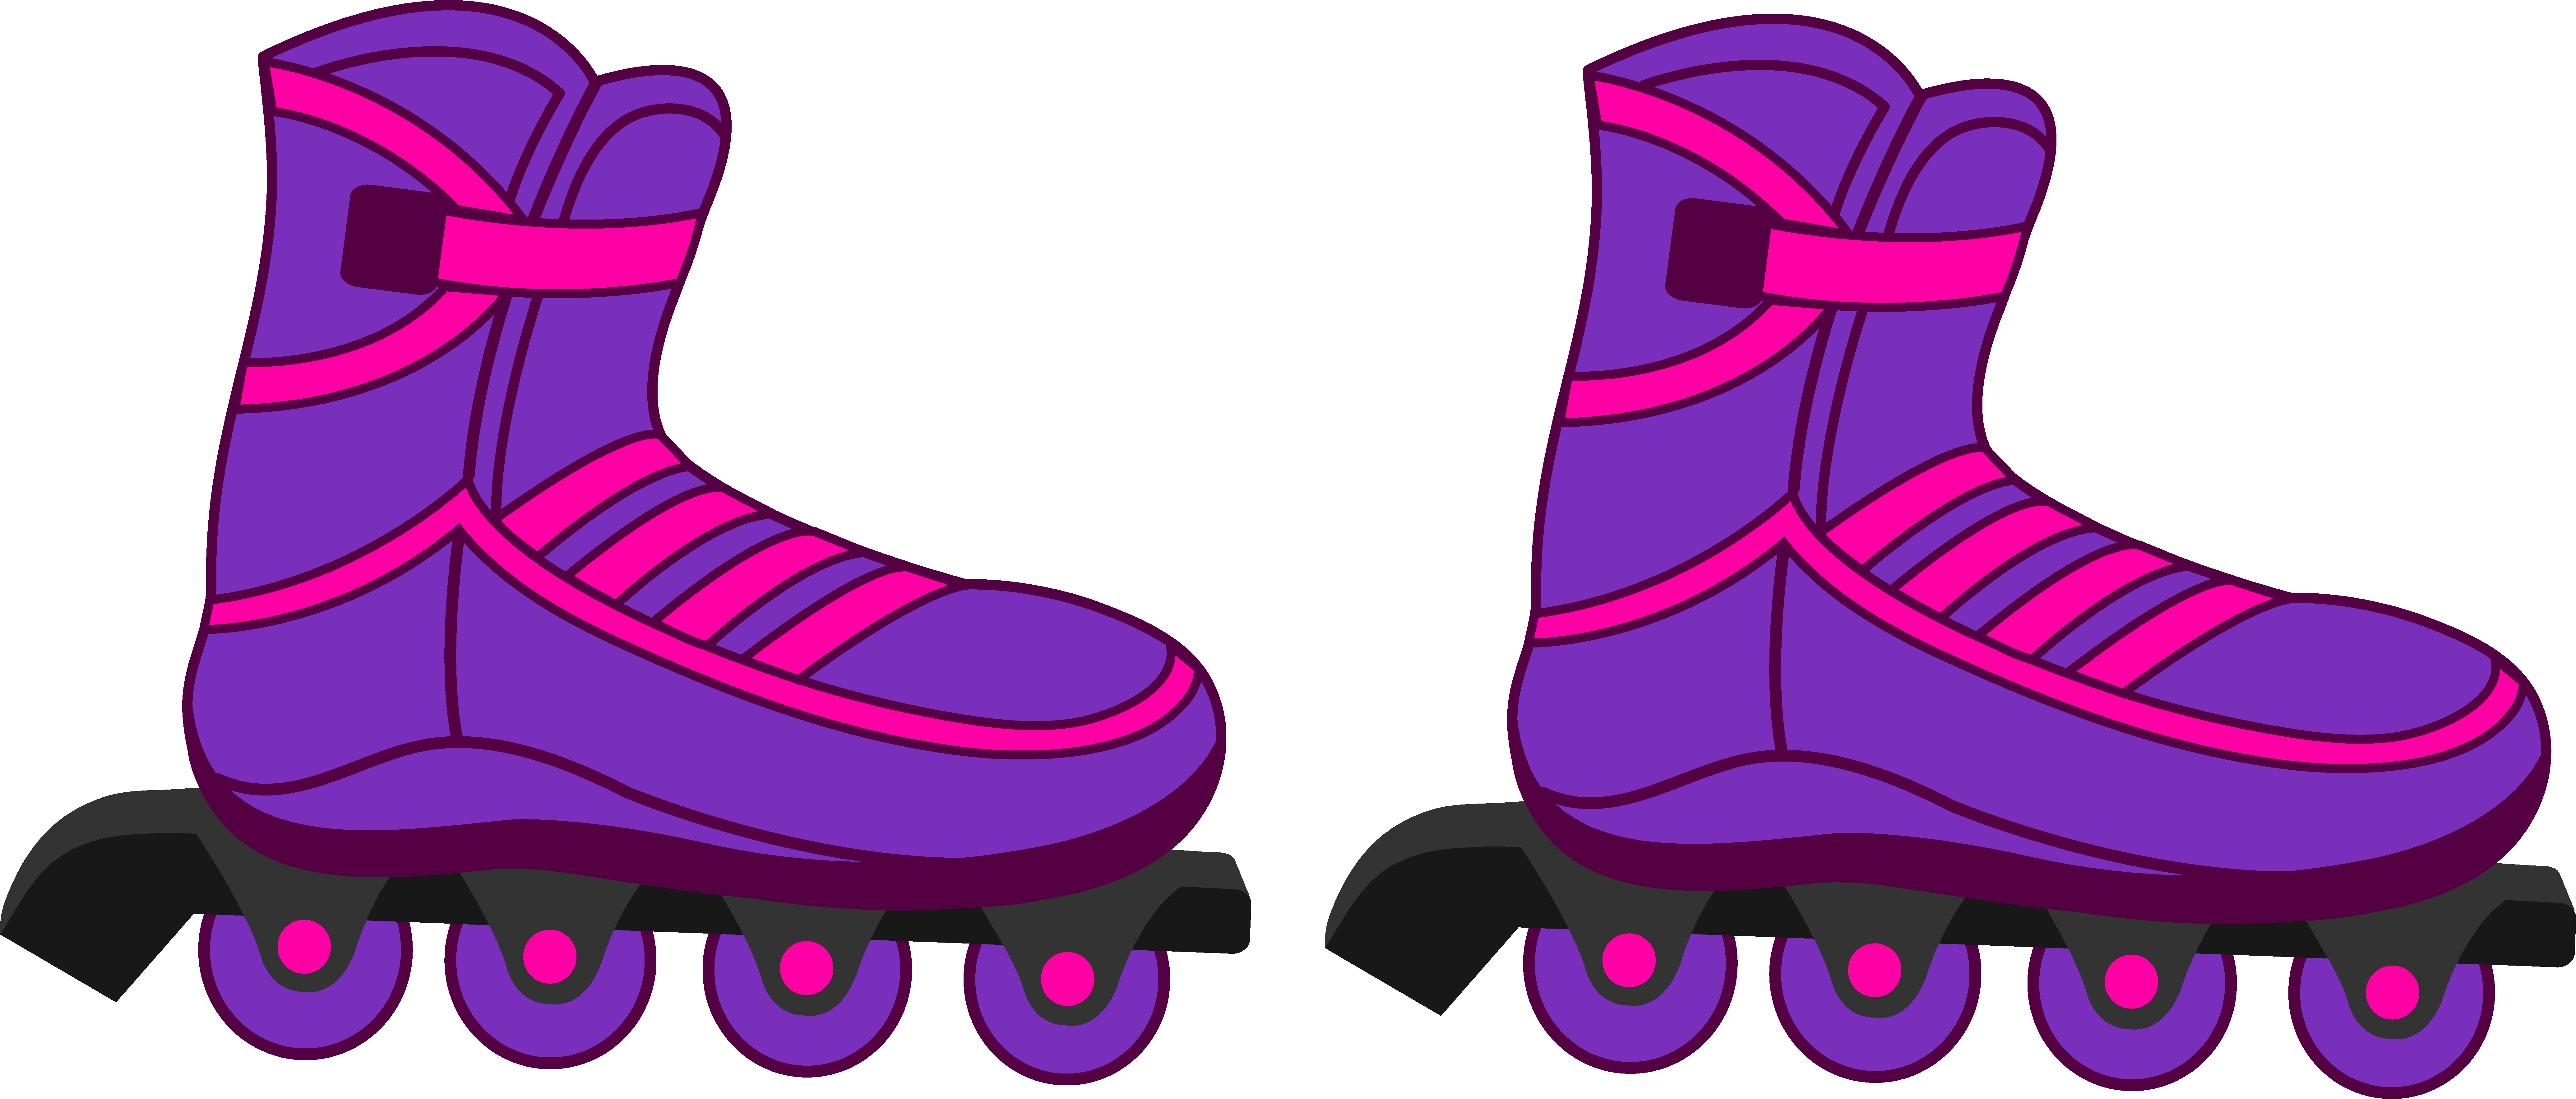 Roller skates clipart two kid. Image result for simple